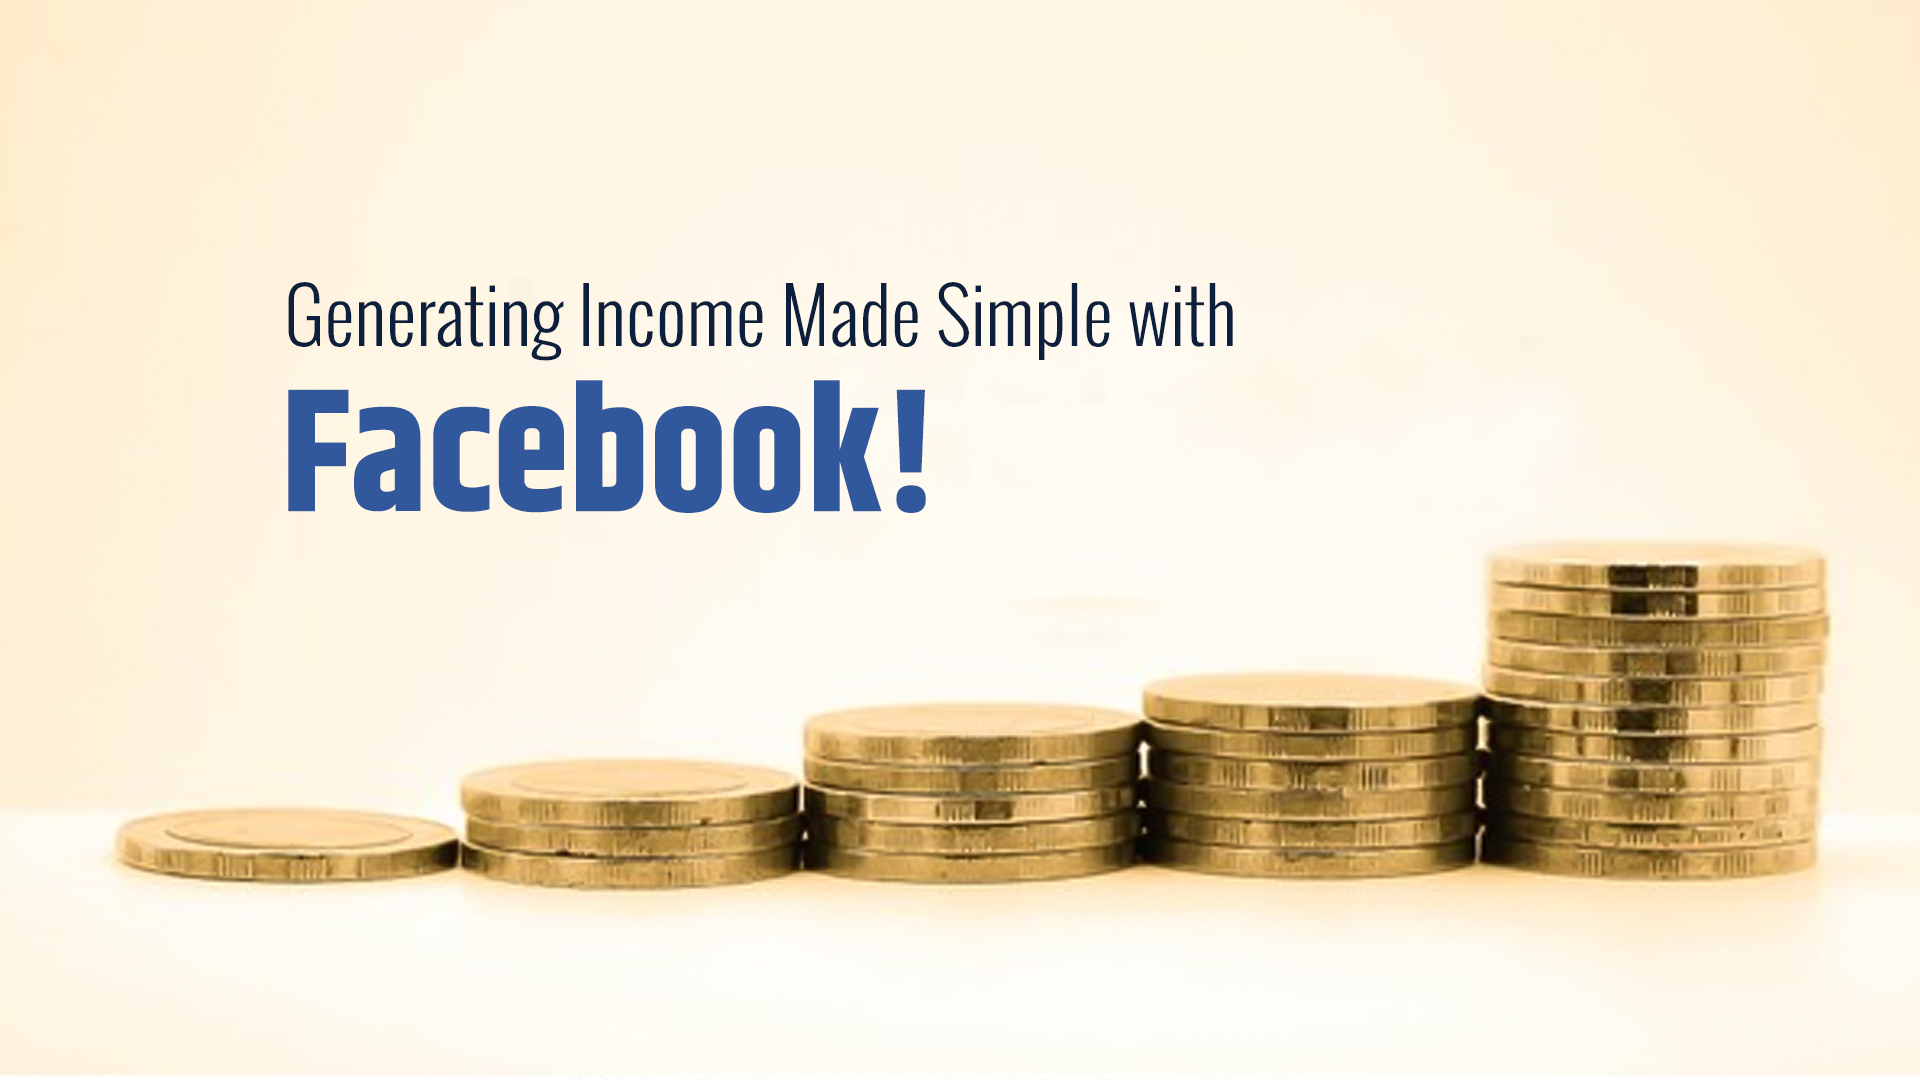 Generating income made simple with facebook